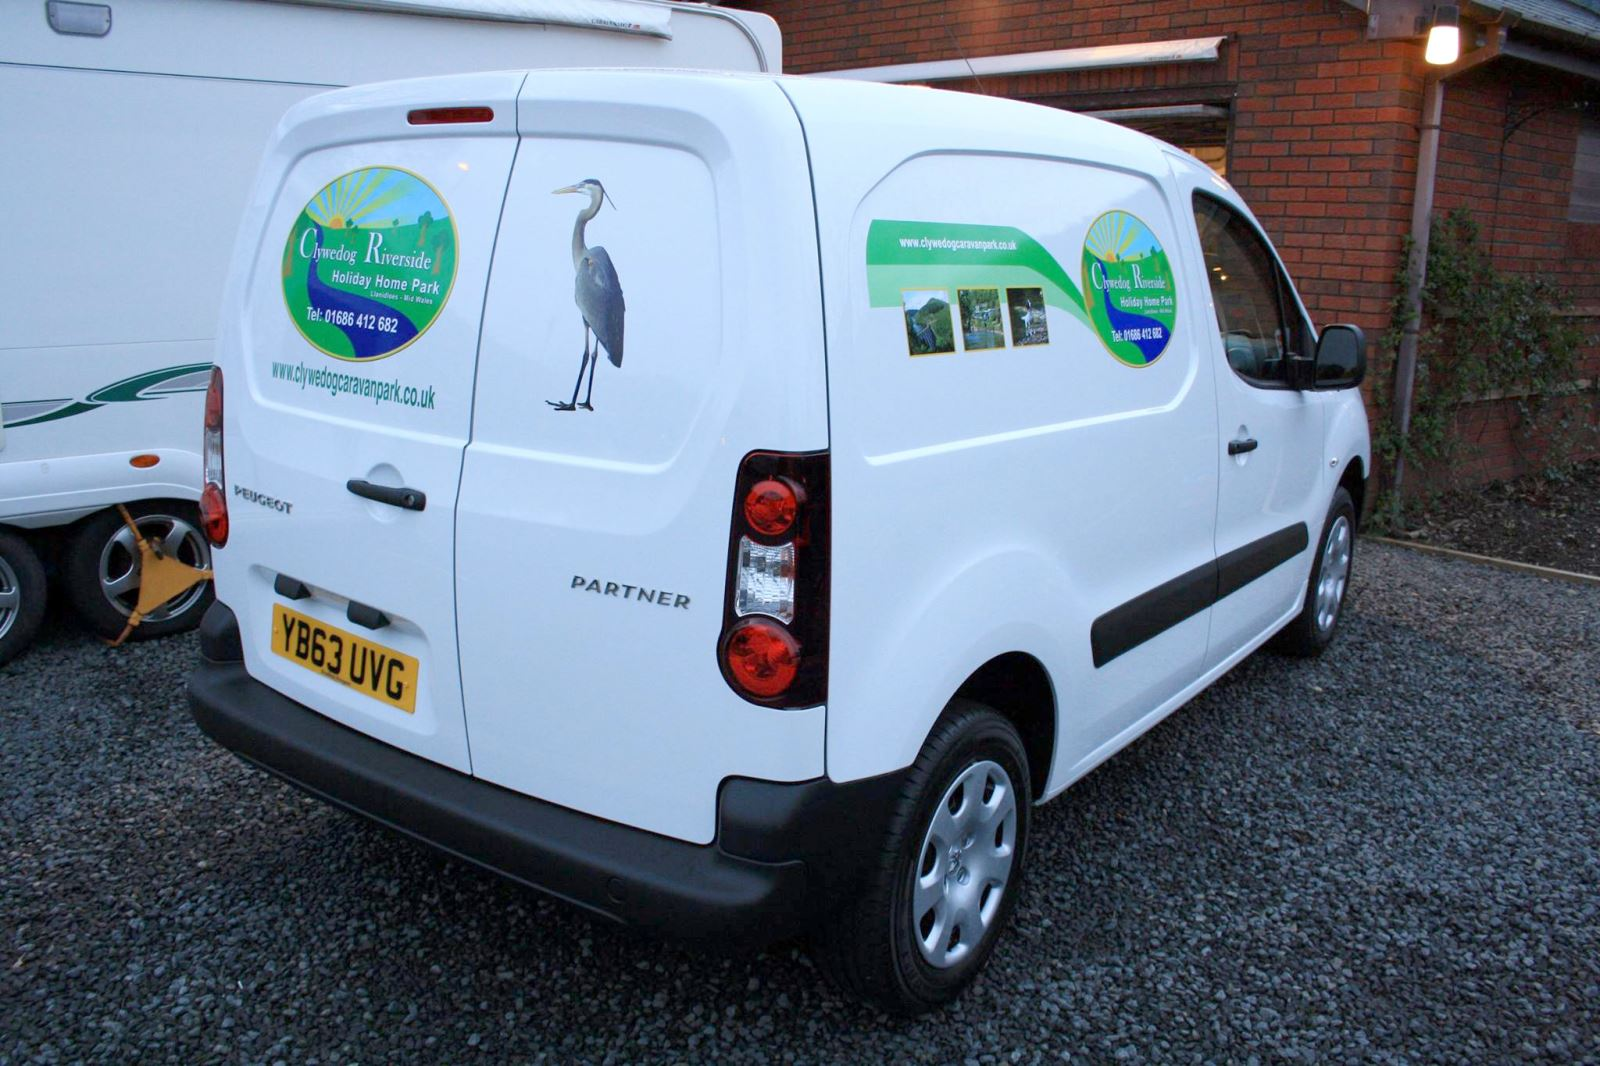 Clywedog Riverside Holiday Home Park Branding on their vans